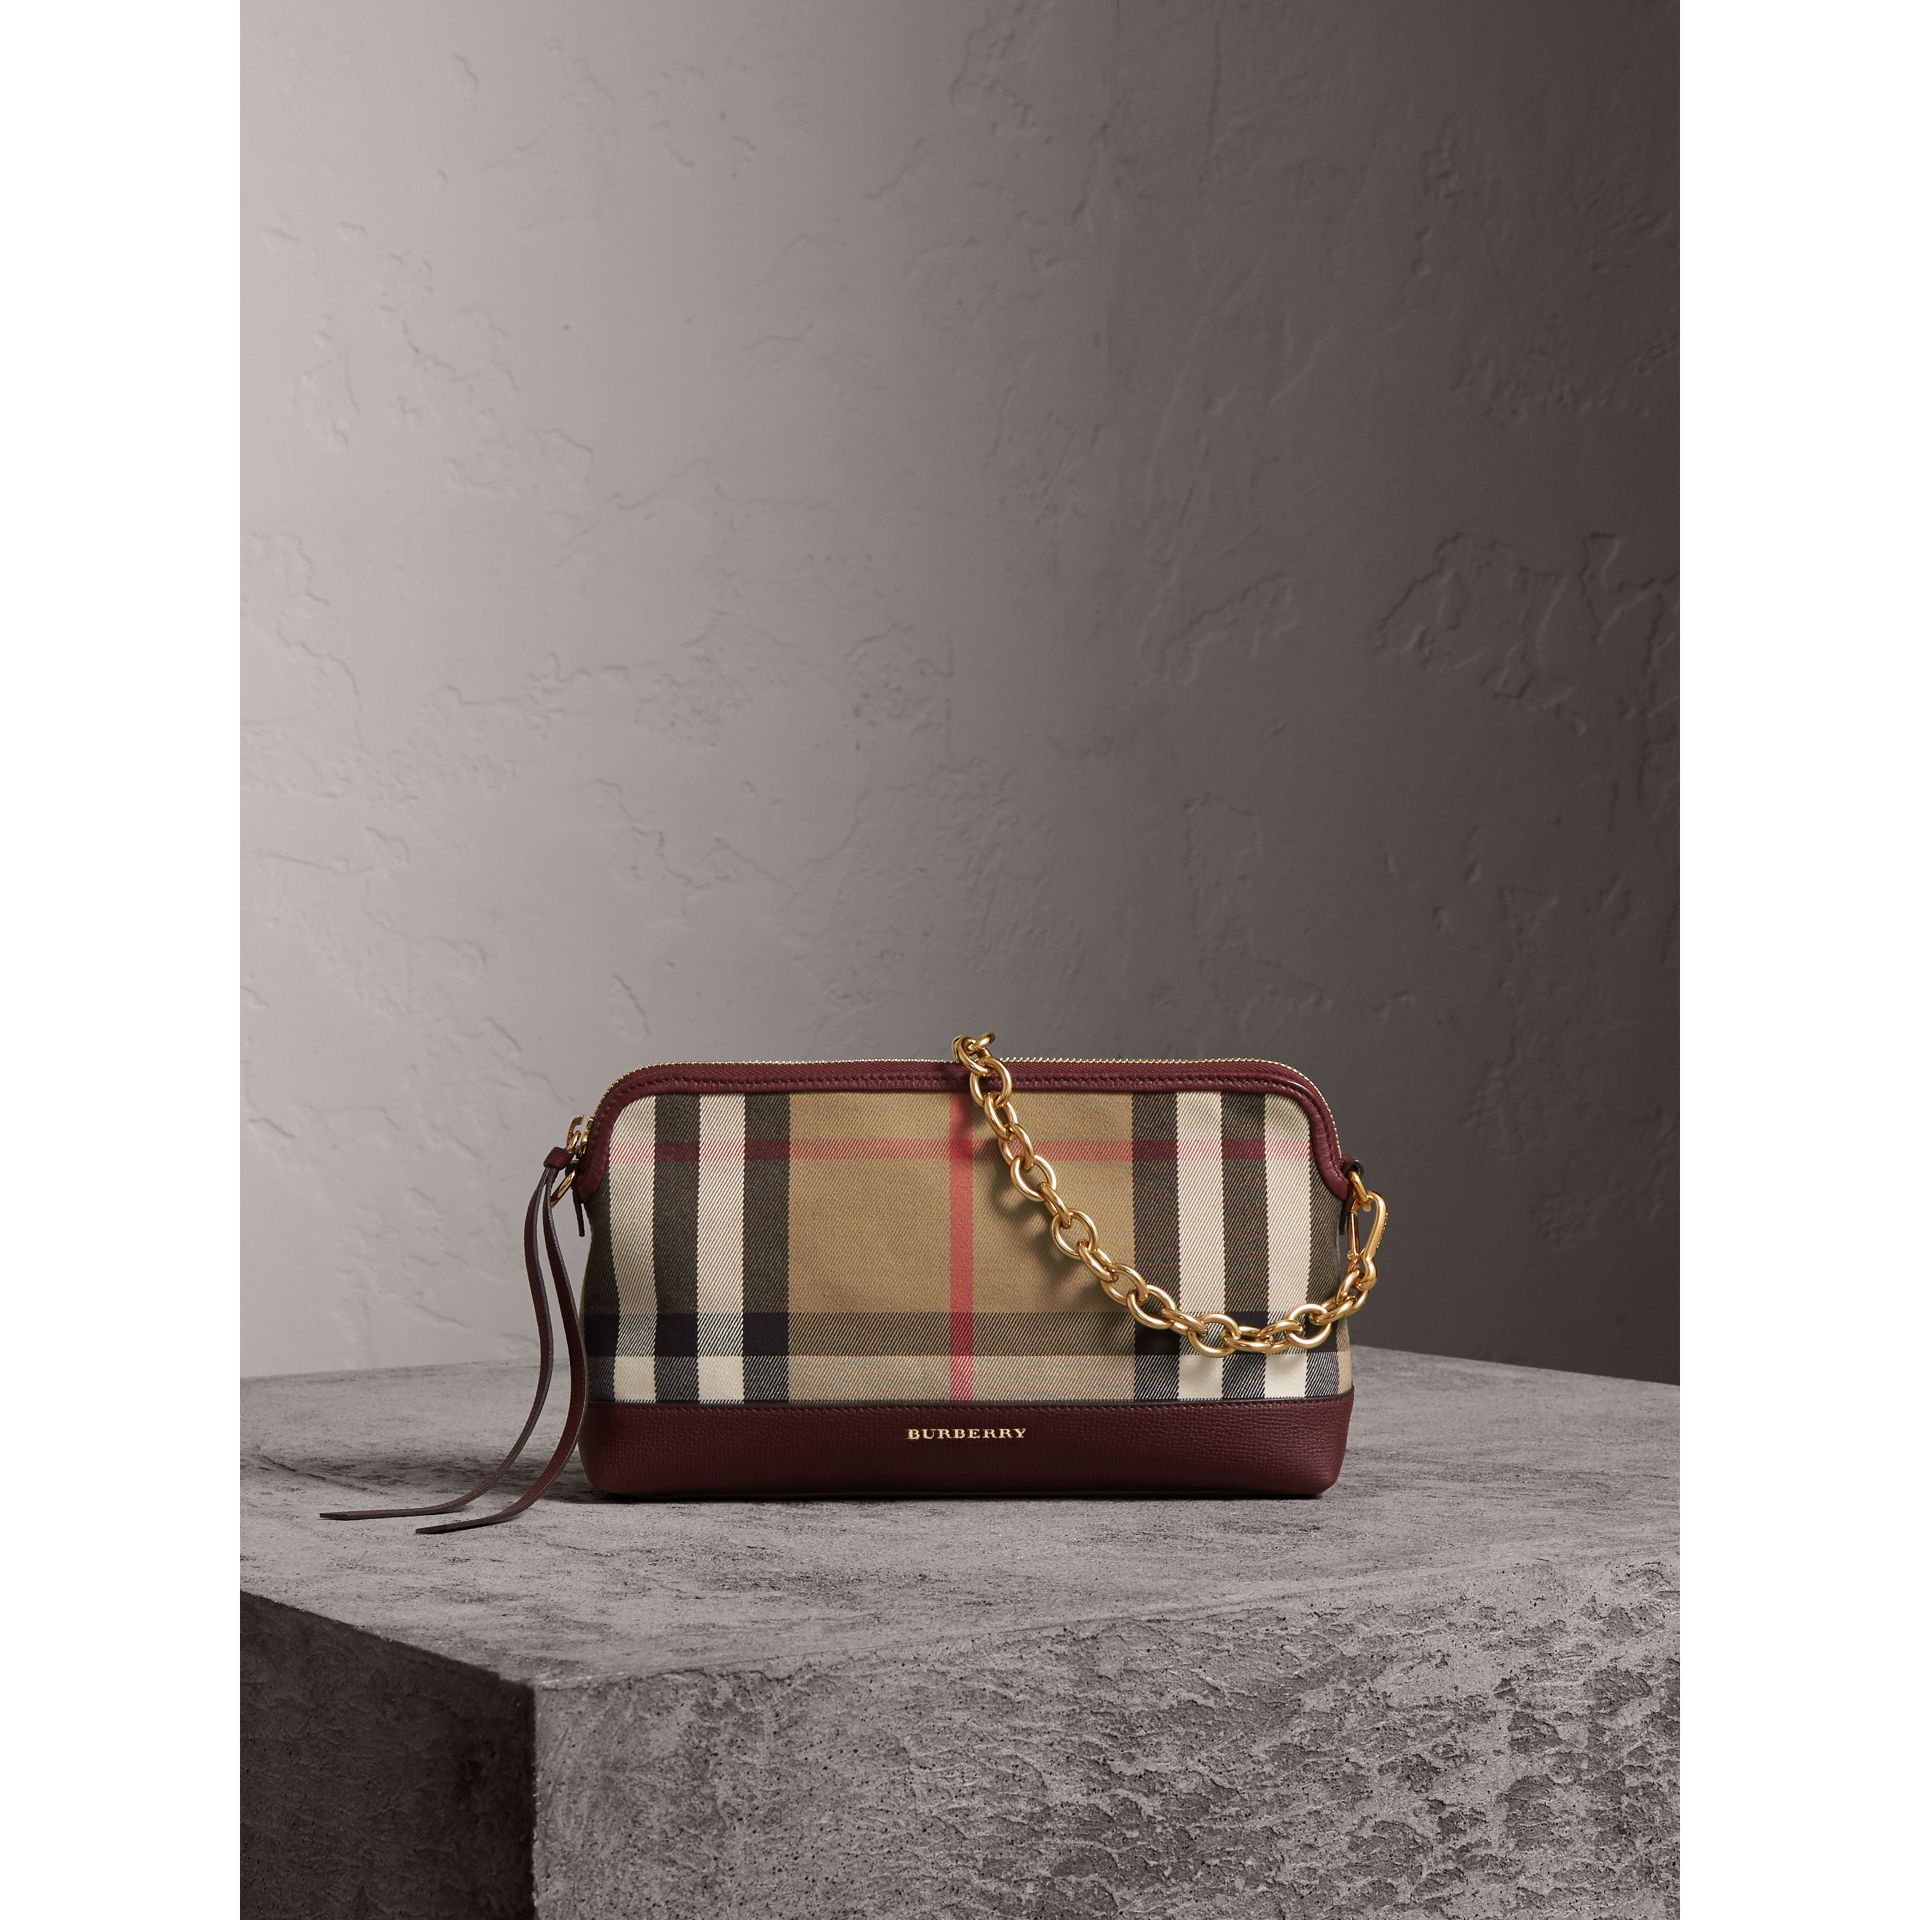 House Check and Leather Clutch Bag in Mahogany Red - Women | Burberry Canada - gallery image 1